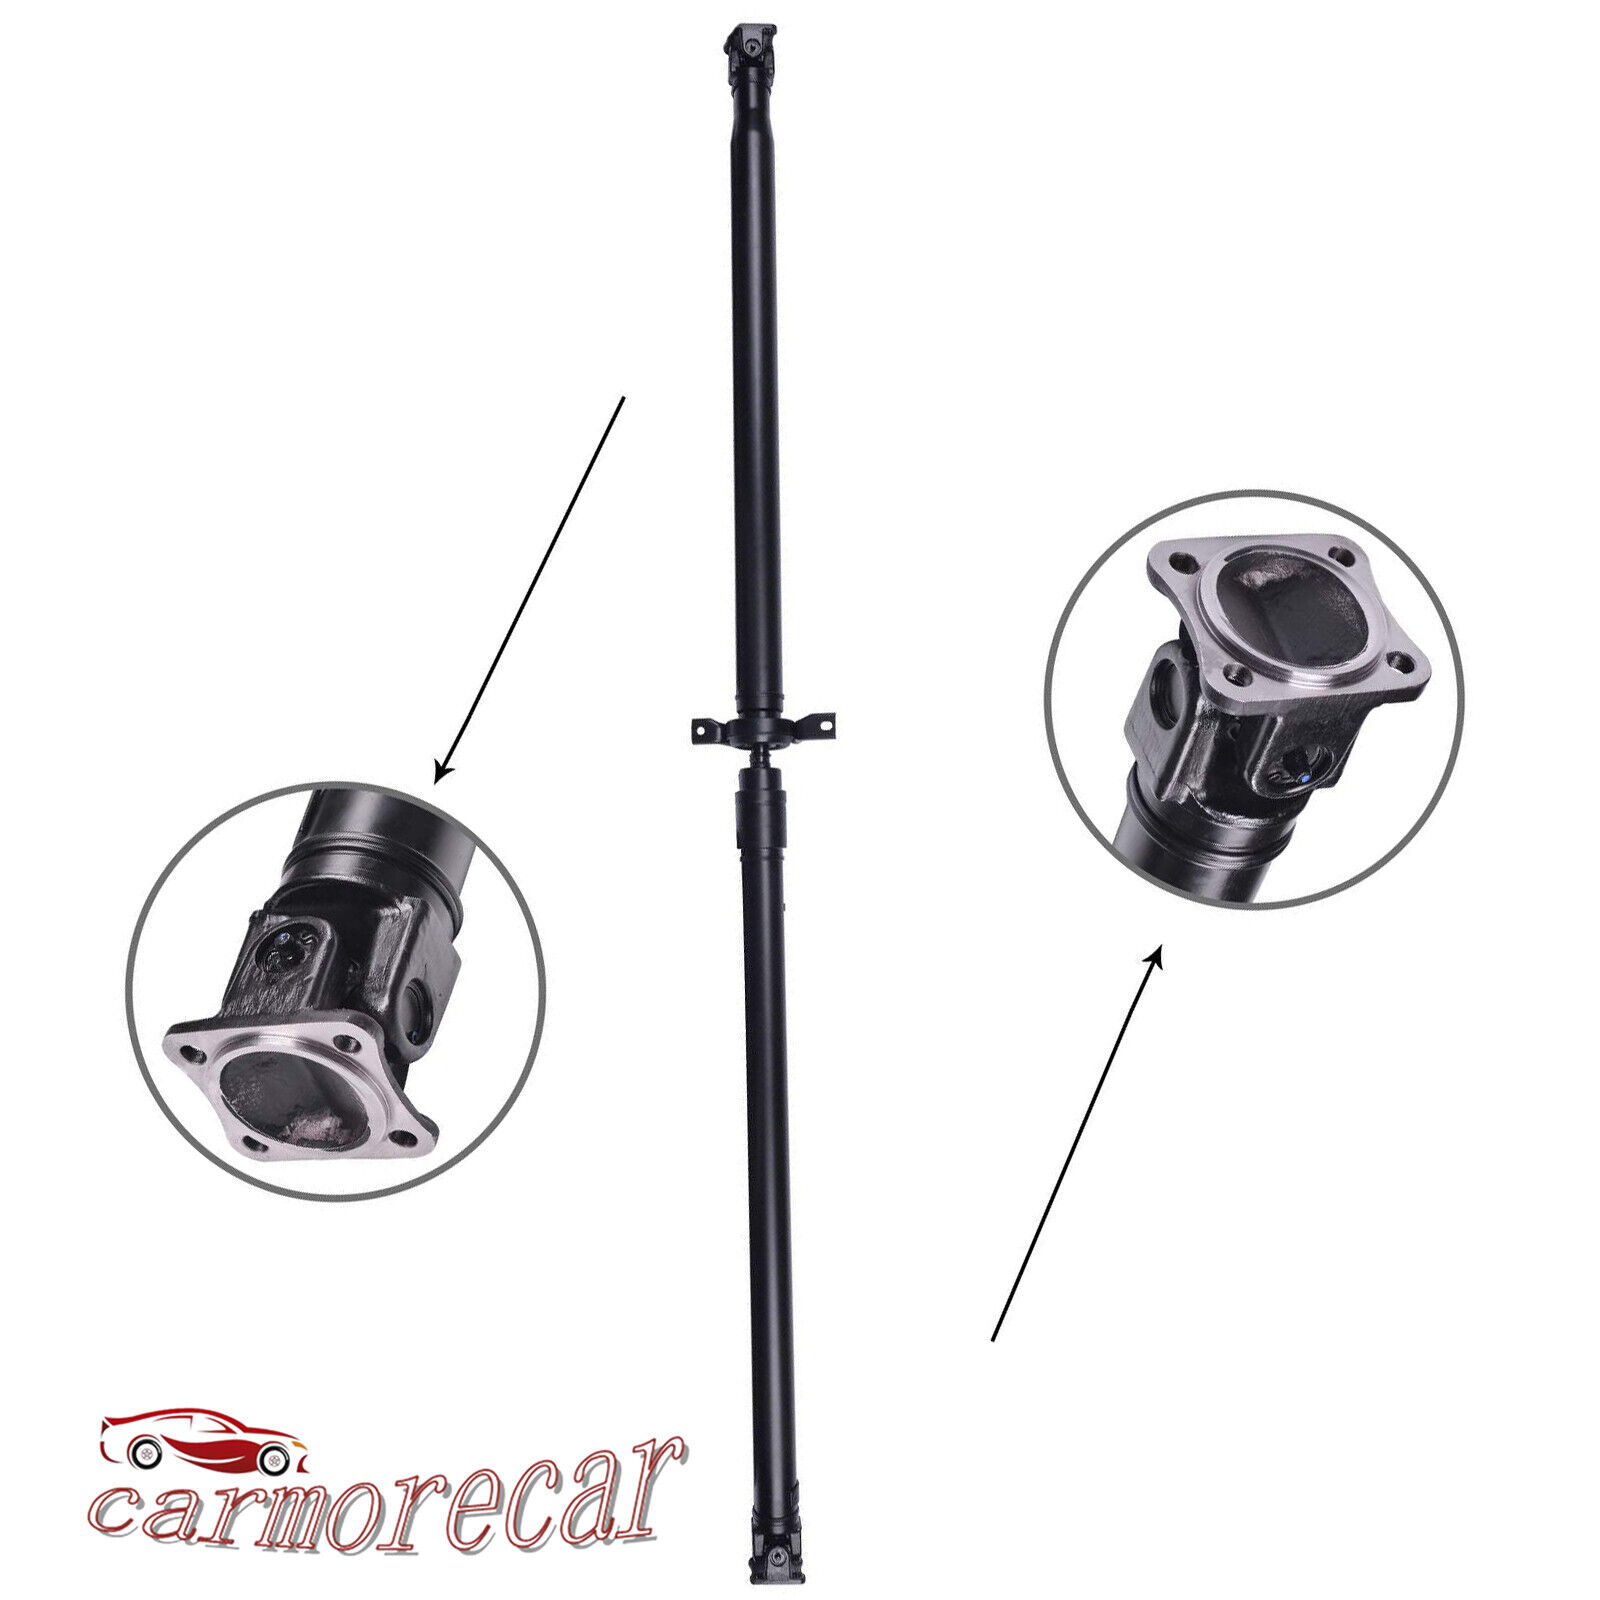 New S10 A01 Shaft Assembly Rear Drive For